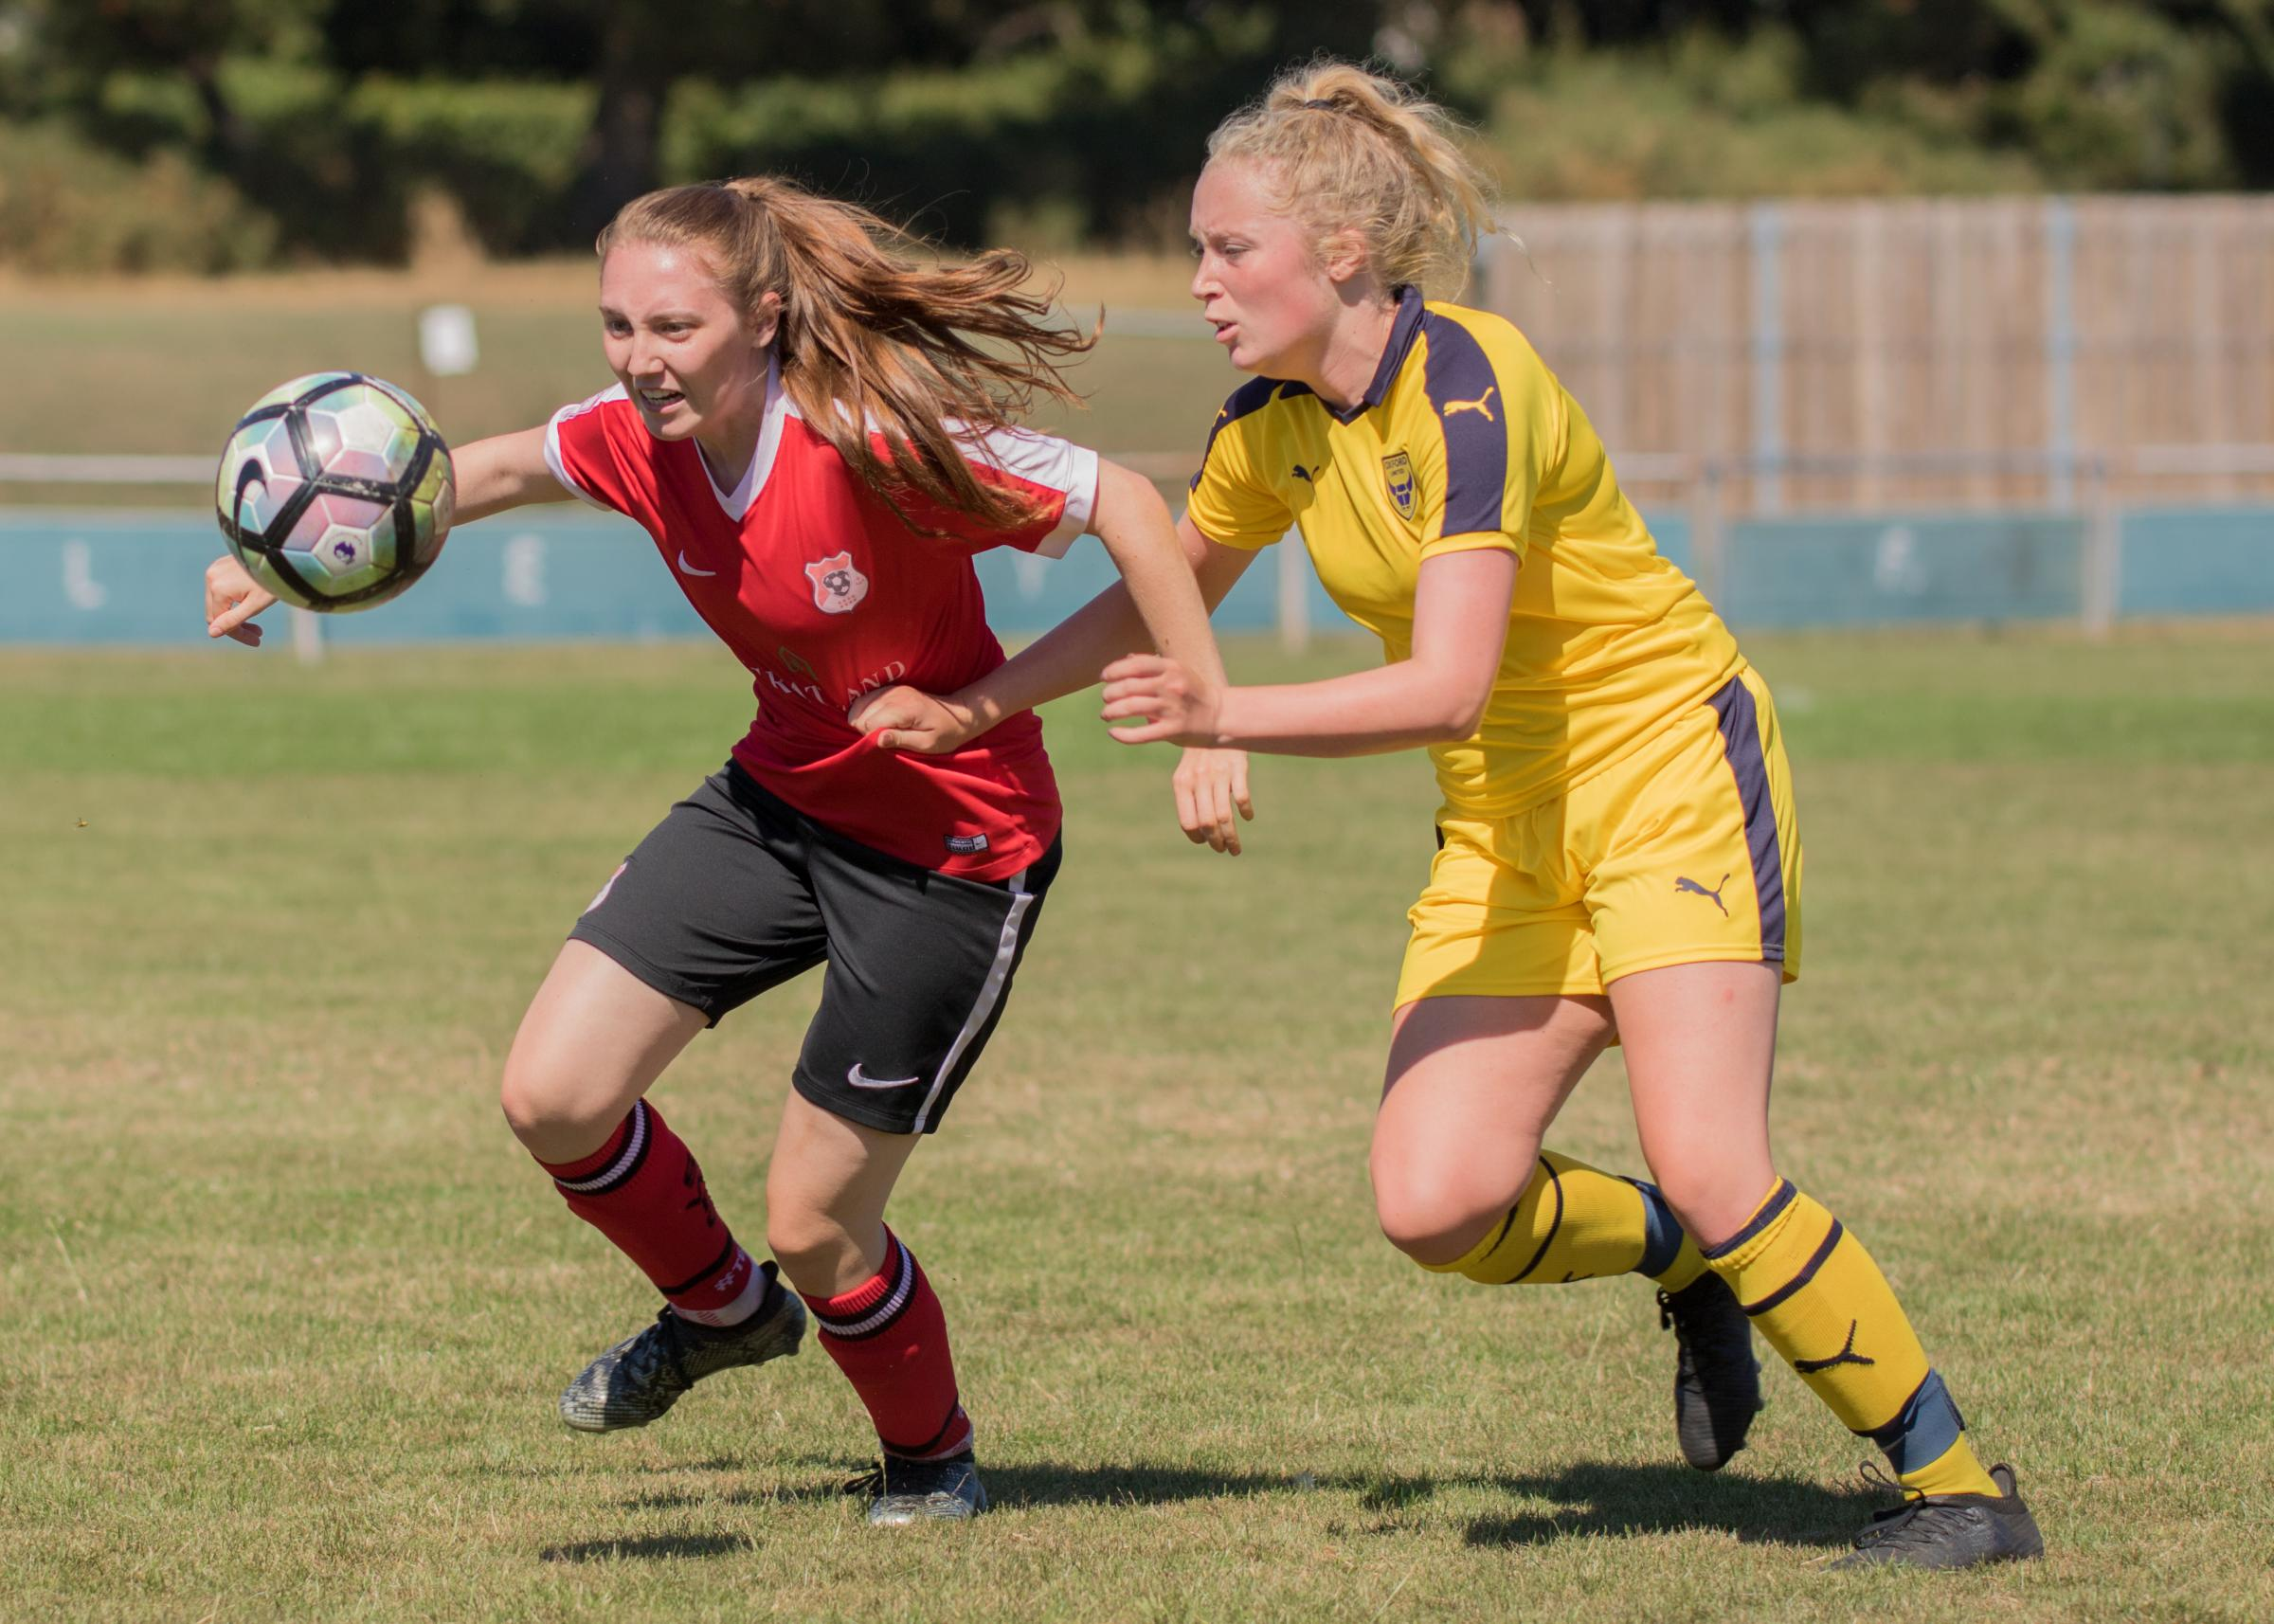 Hannah Samuels in action. Pic: Bilcliff Photography